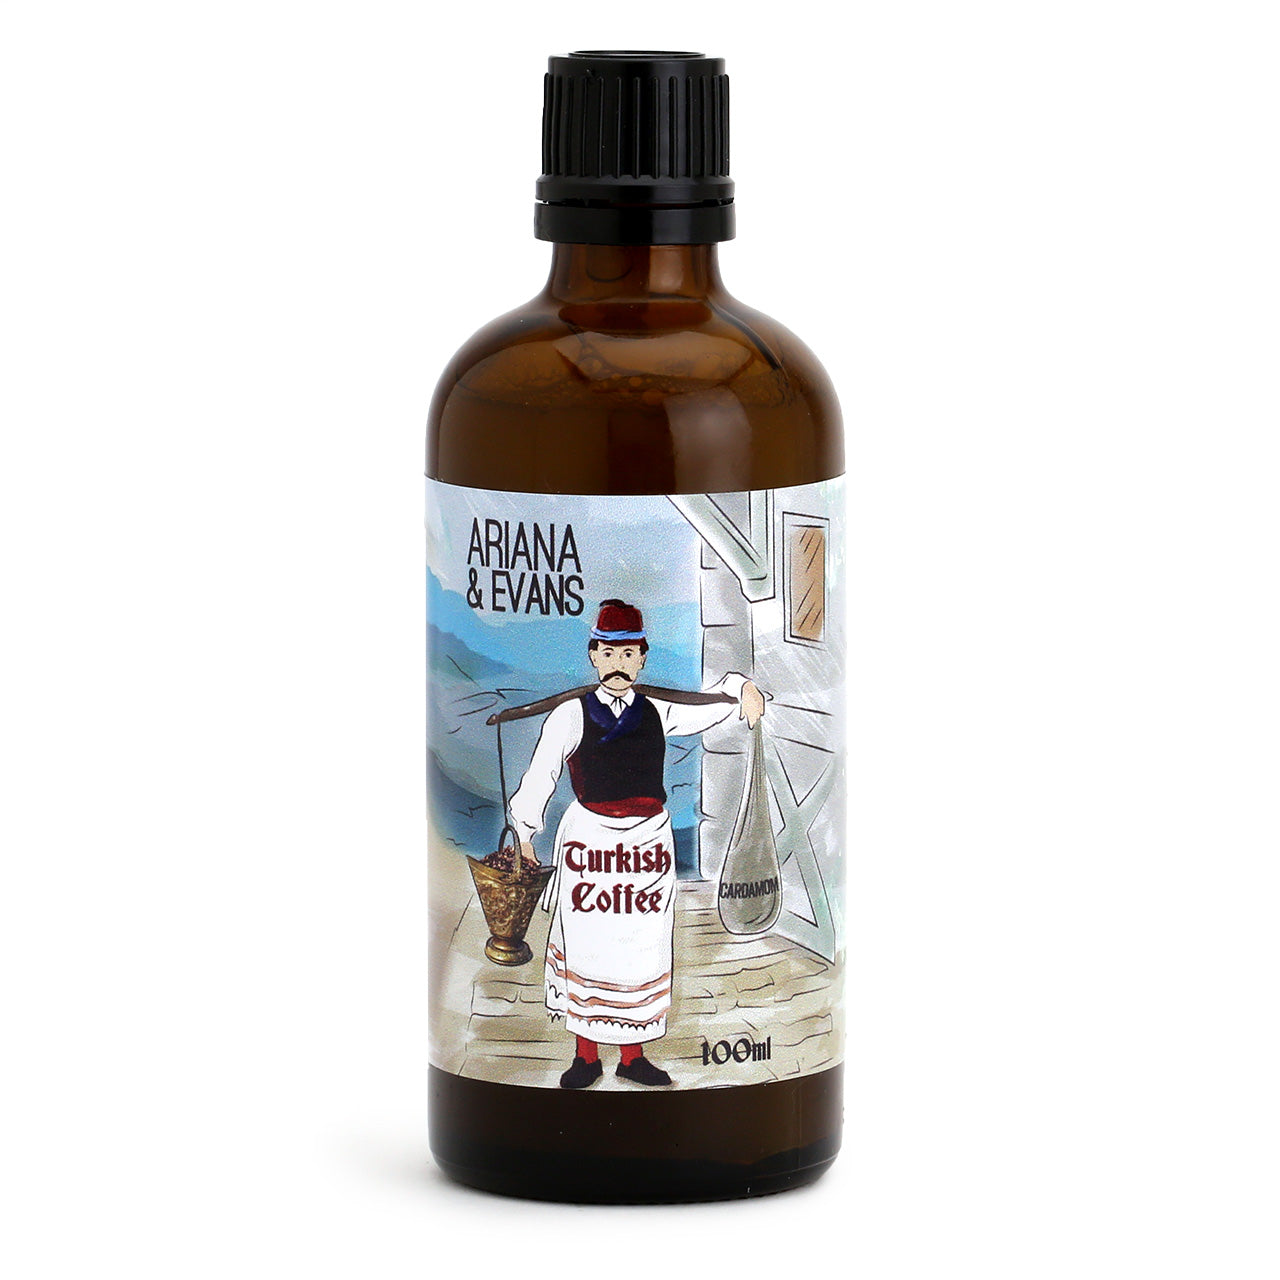 Ariana & Evans Aftershave Splash & Skinfood - Turkish Coffee - 100ml bottle